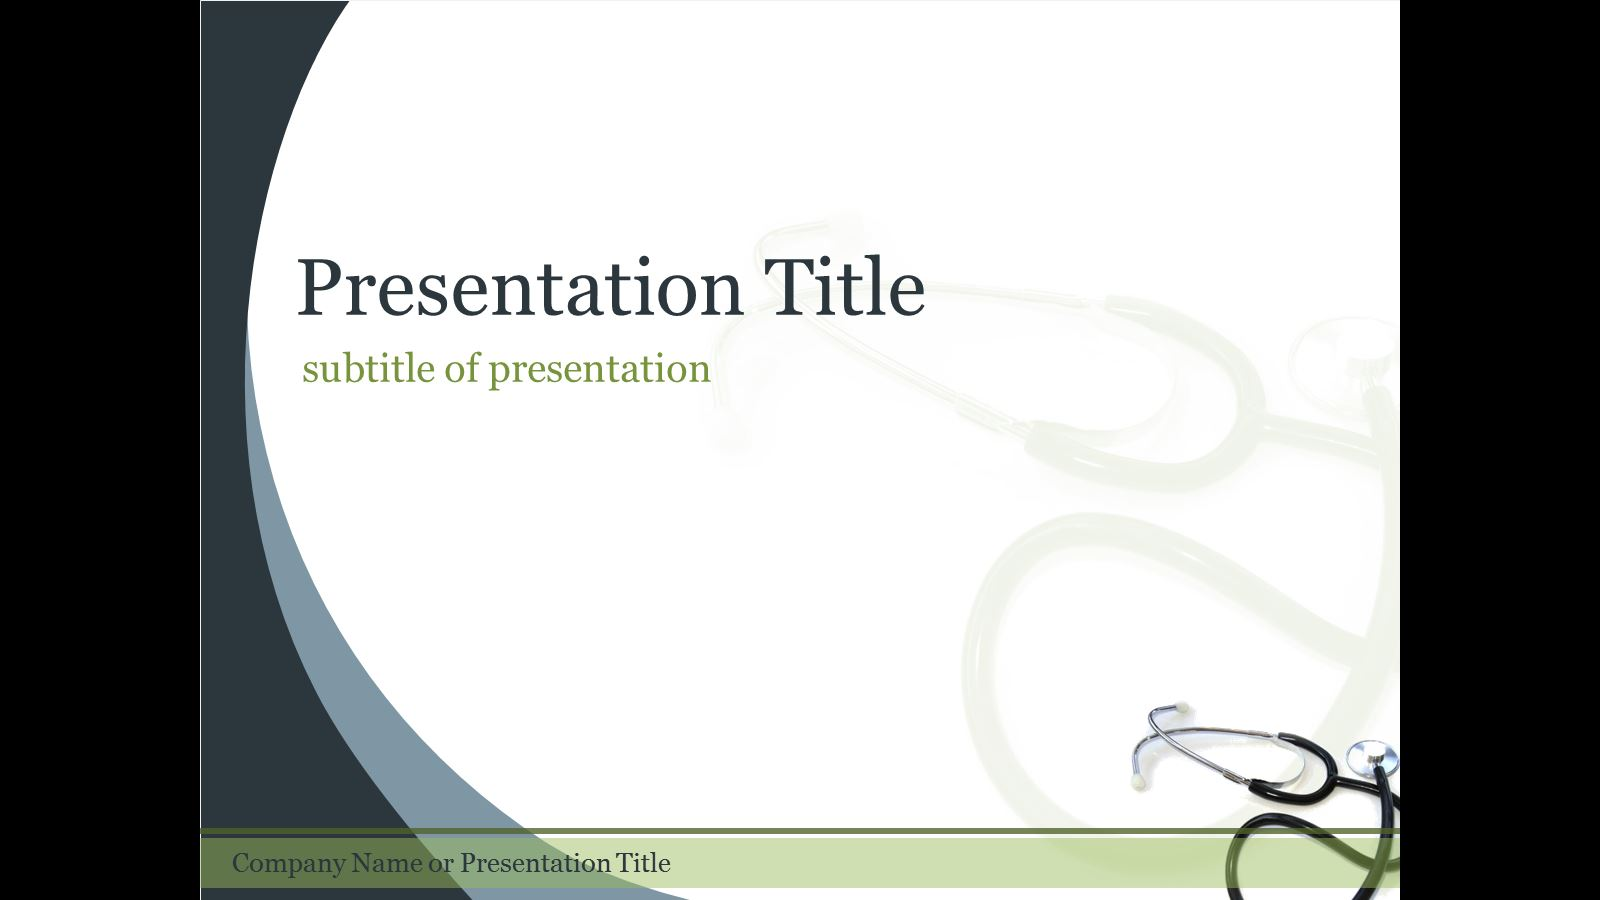 Powerpoint templates free download medical images templates medical powerpoint presentation templates free download gallery powerpoint templates free download medical images templates medical powerpoint alramifo Gallery